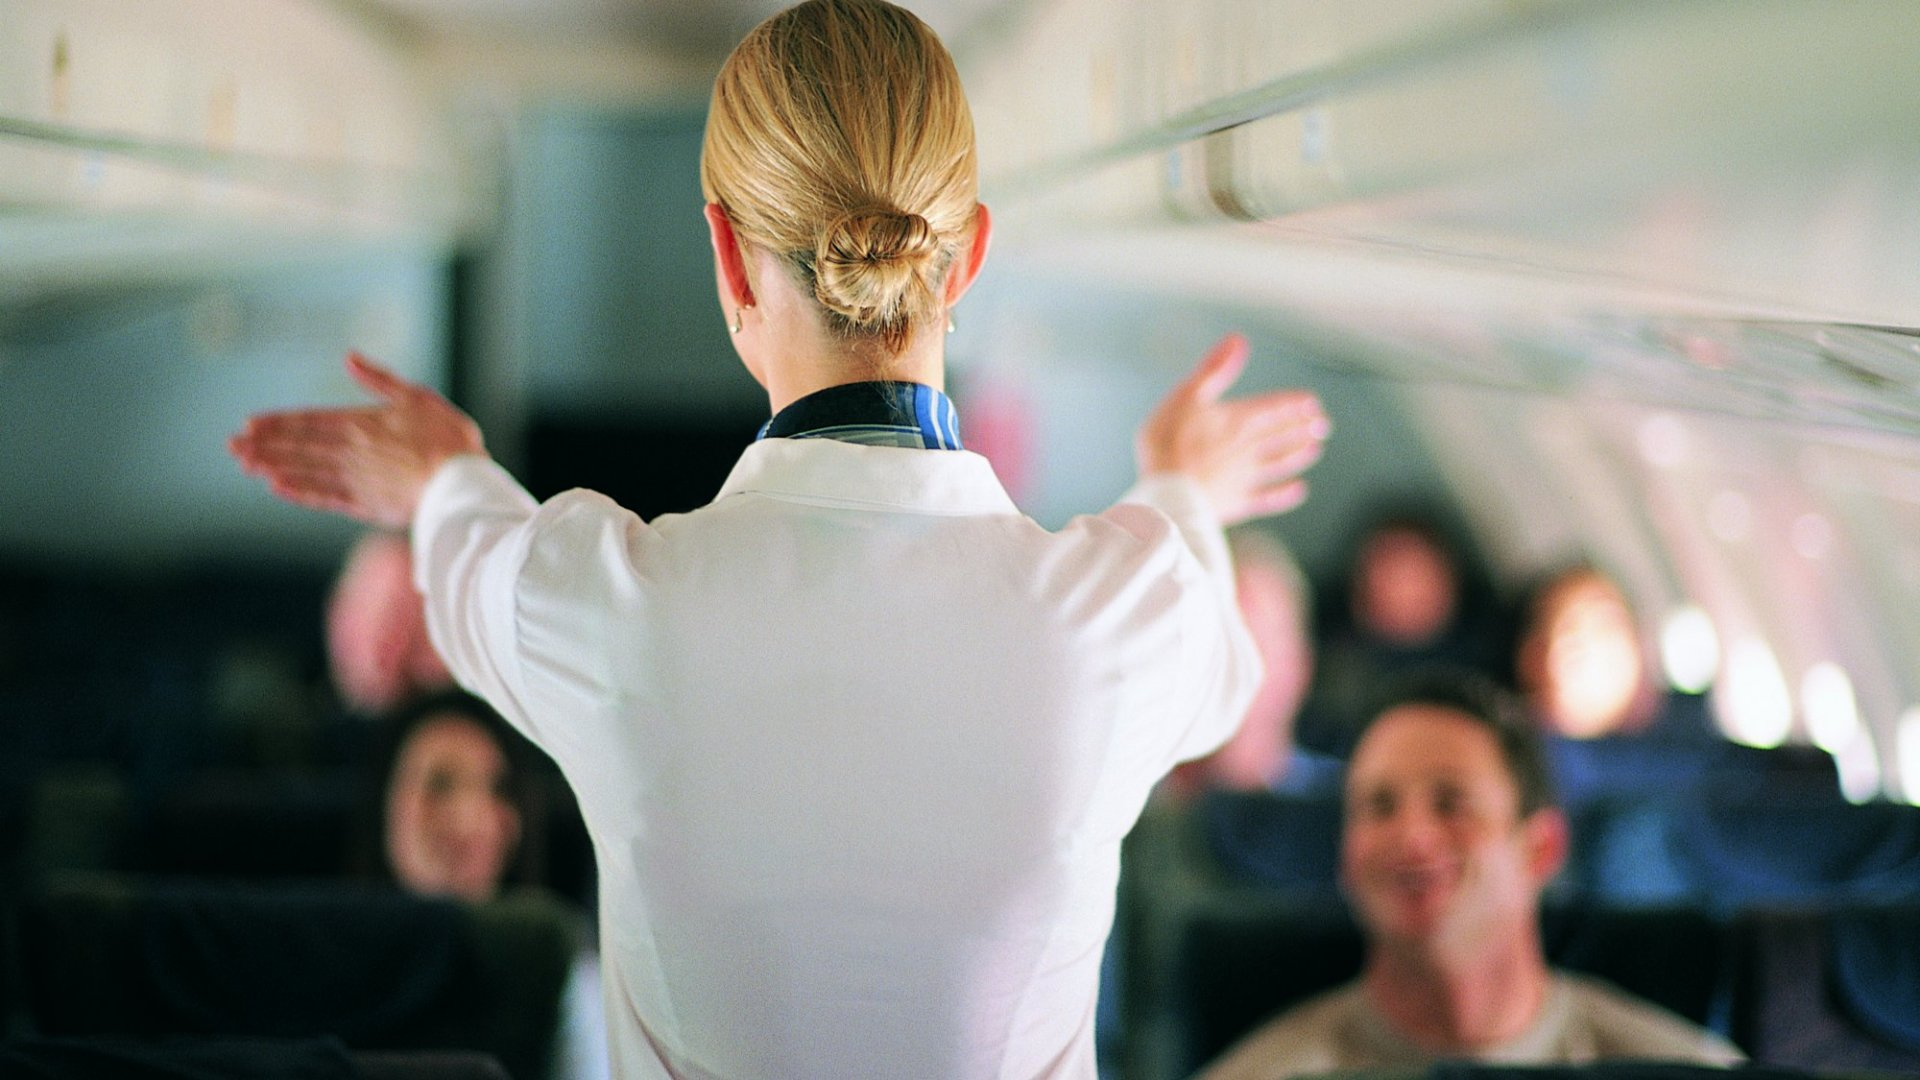 Flight Attendants Wanted This Small Change for 20+ Years. Then Congress Gave Them a Big Surprise at 3 A.M